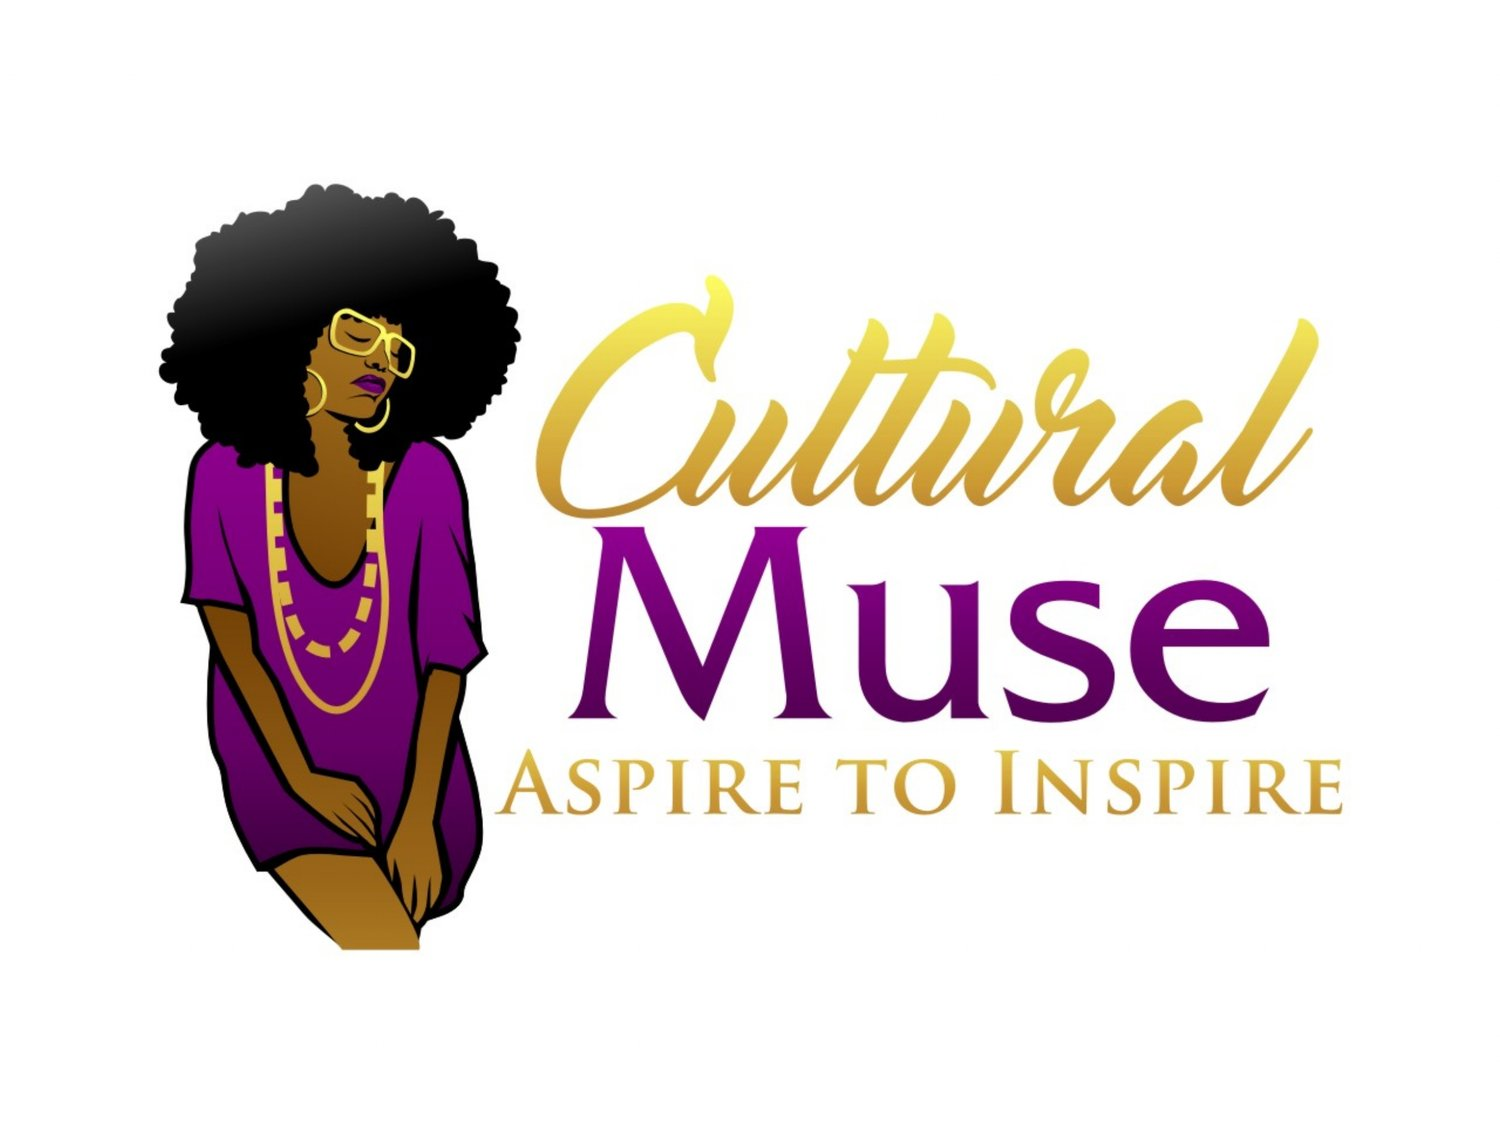 Cultural Muse